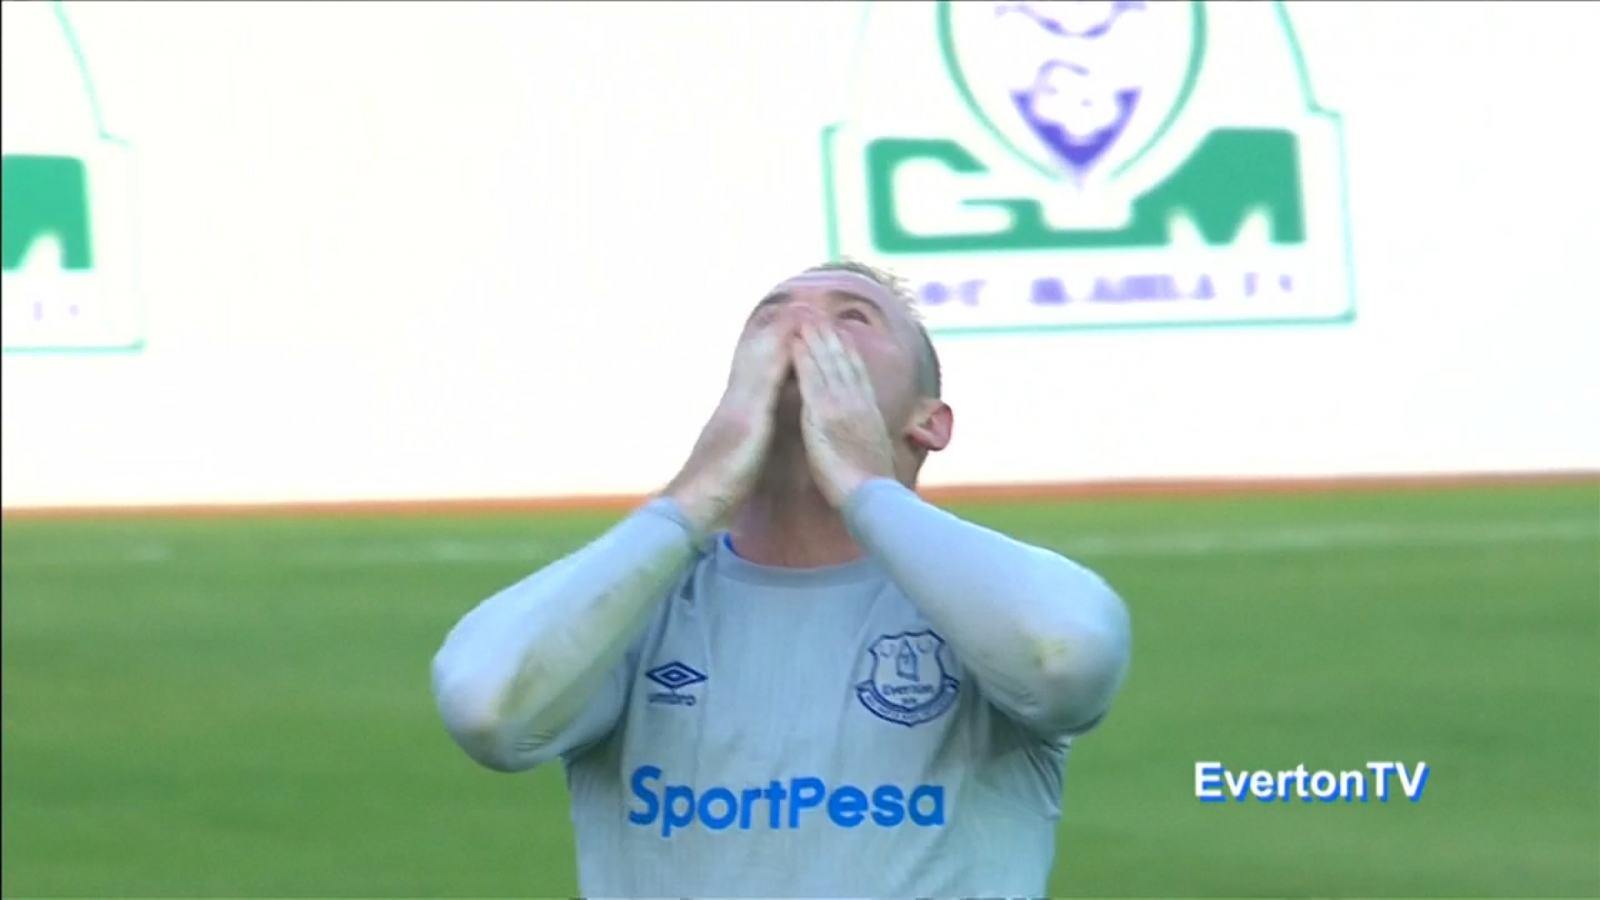 Wayne Rooney scores wonder goal on his first game back at Everton